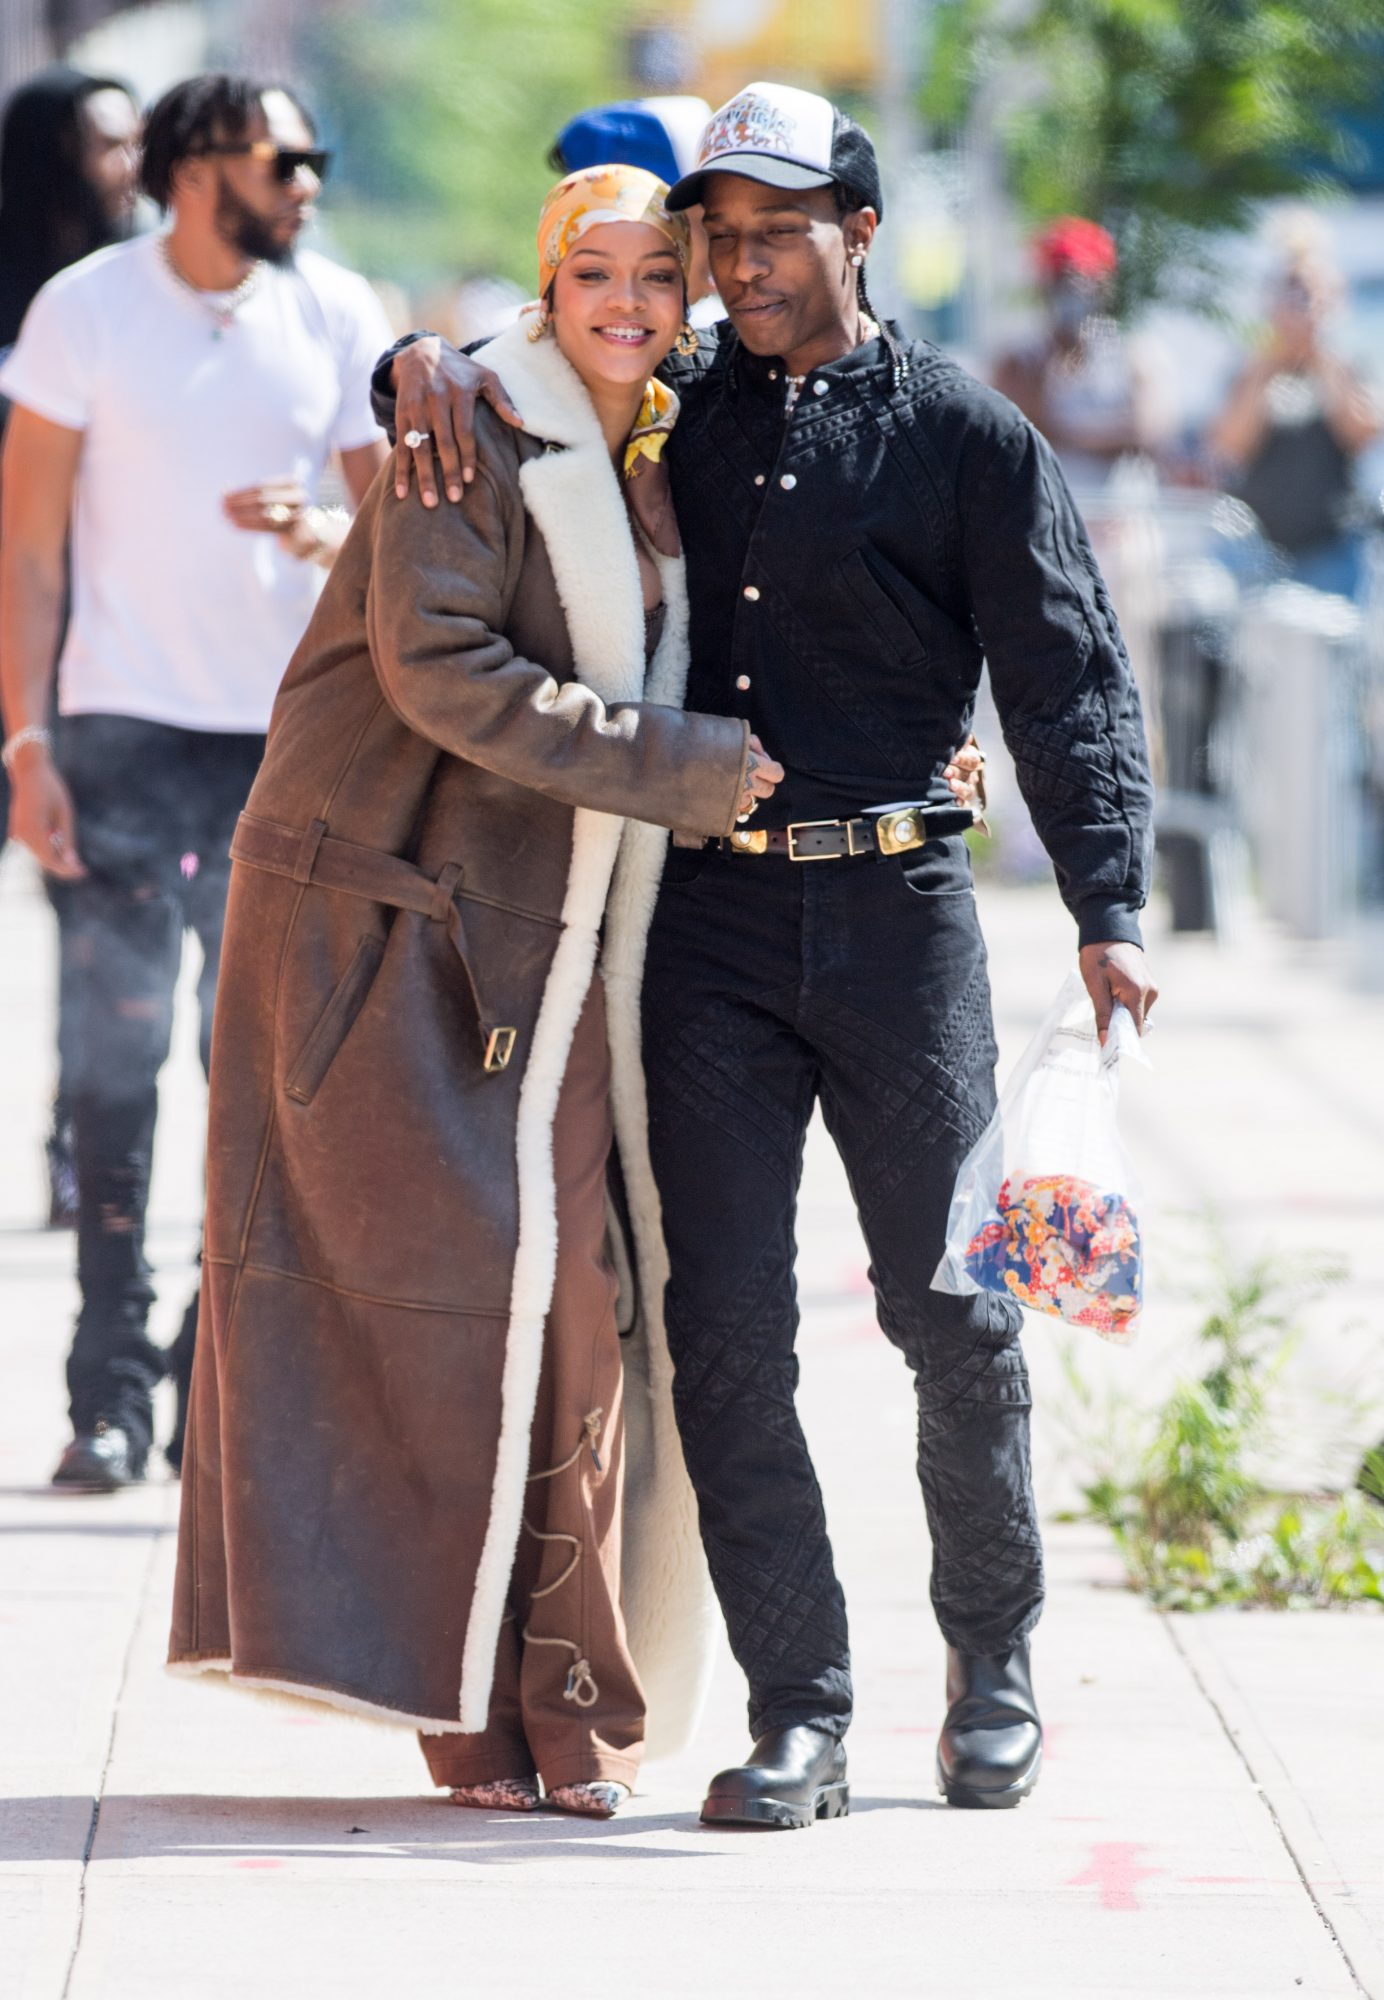 Rihanna and A$AP Rocky Share Some PDA During a Photoshoot in NYC